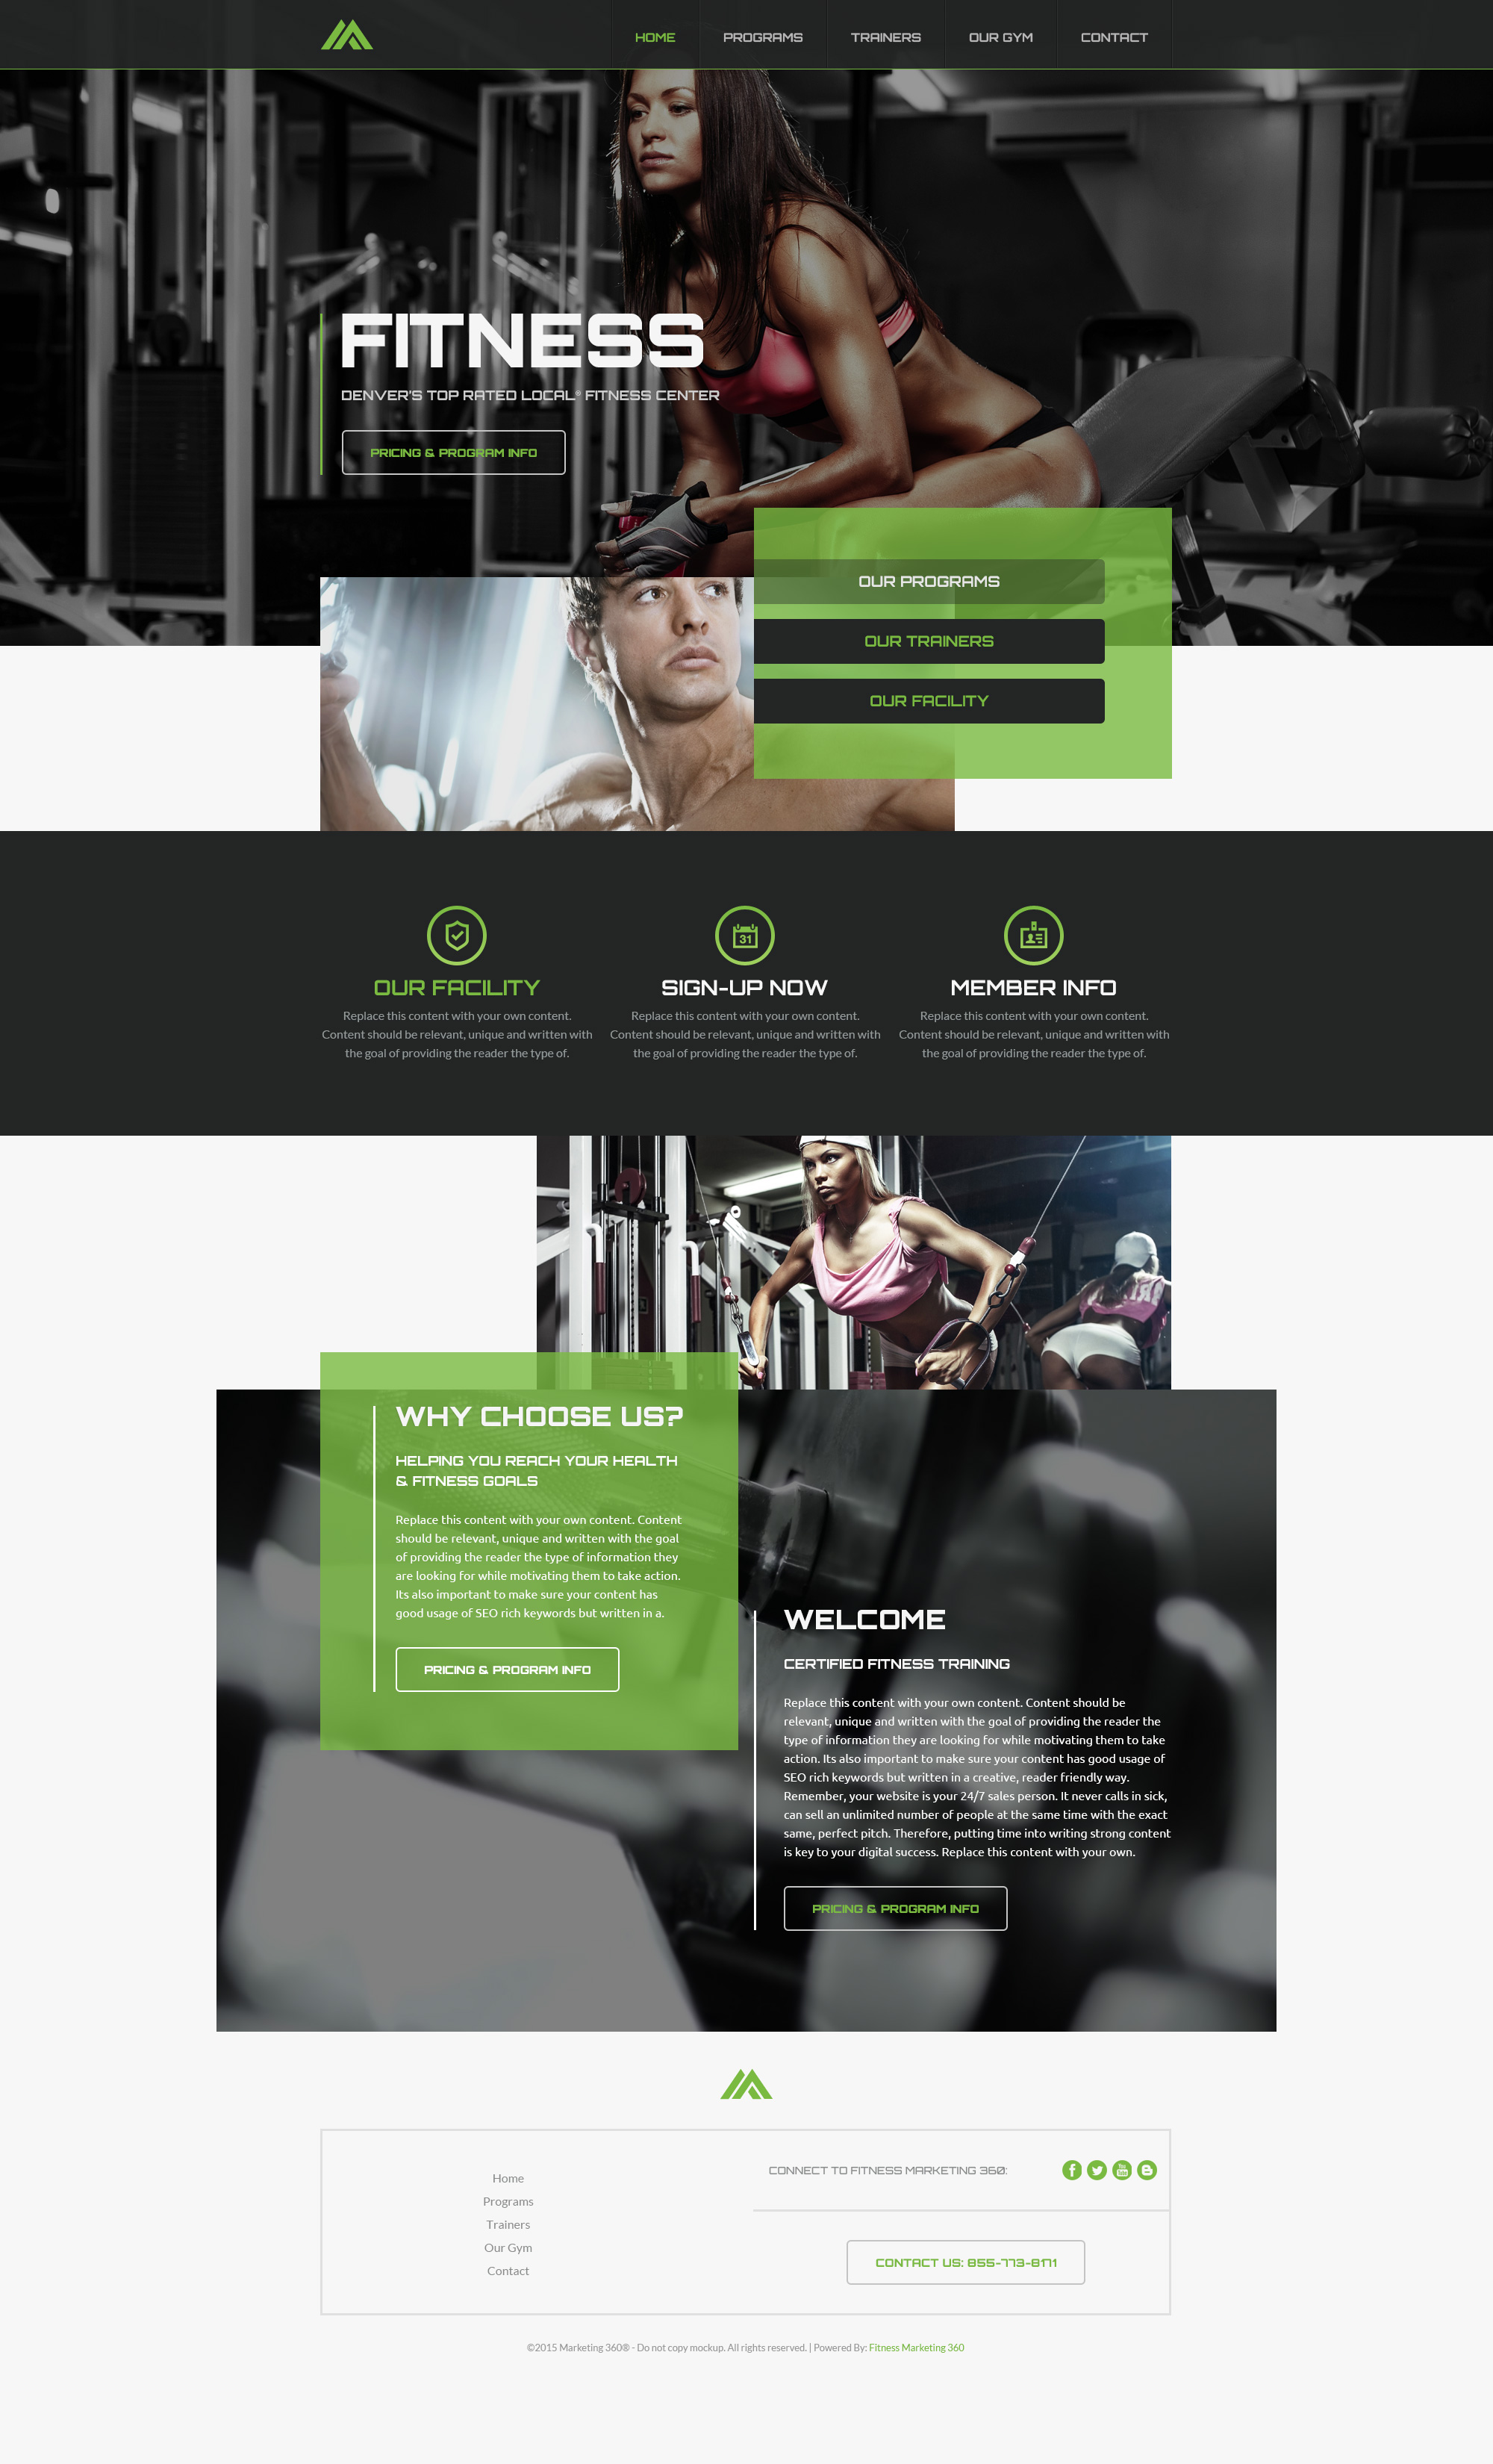 Fitness Website Templates - Mobile Responsive Designs for Fitness ...